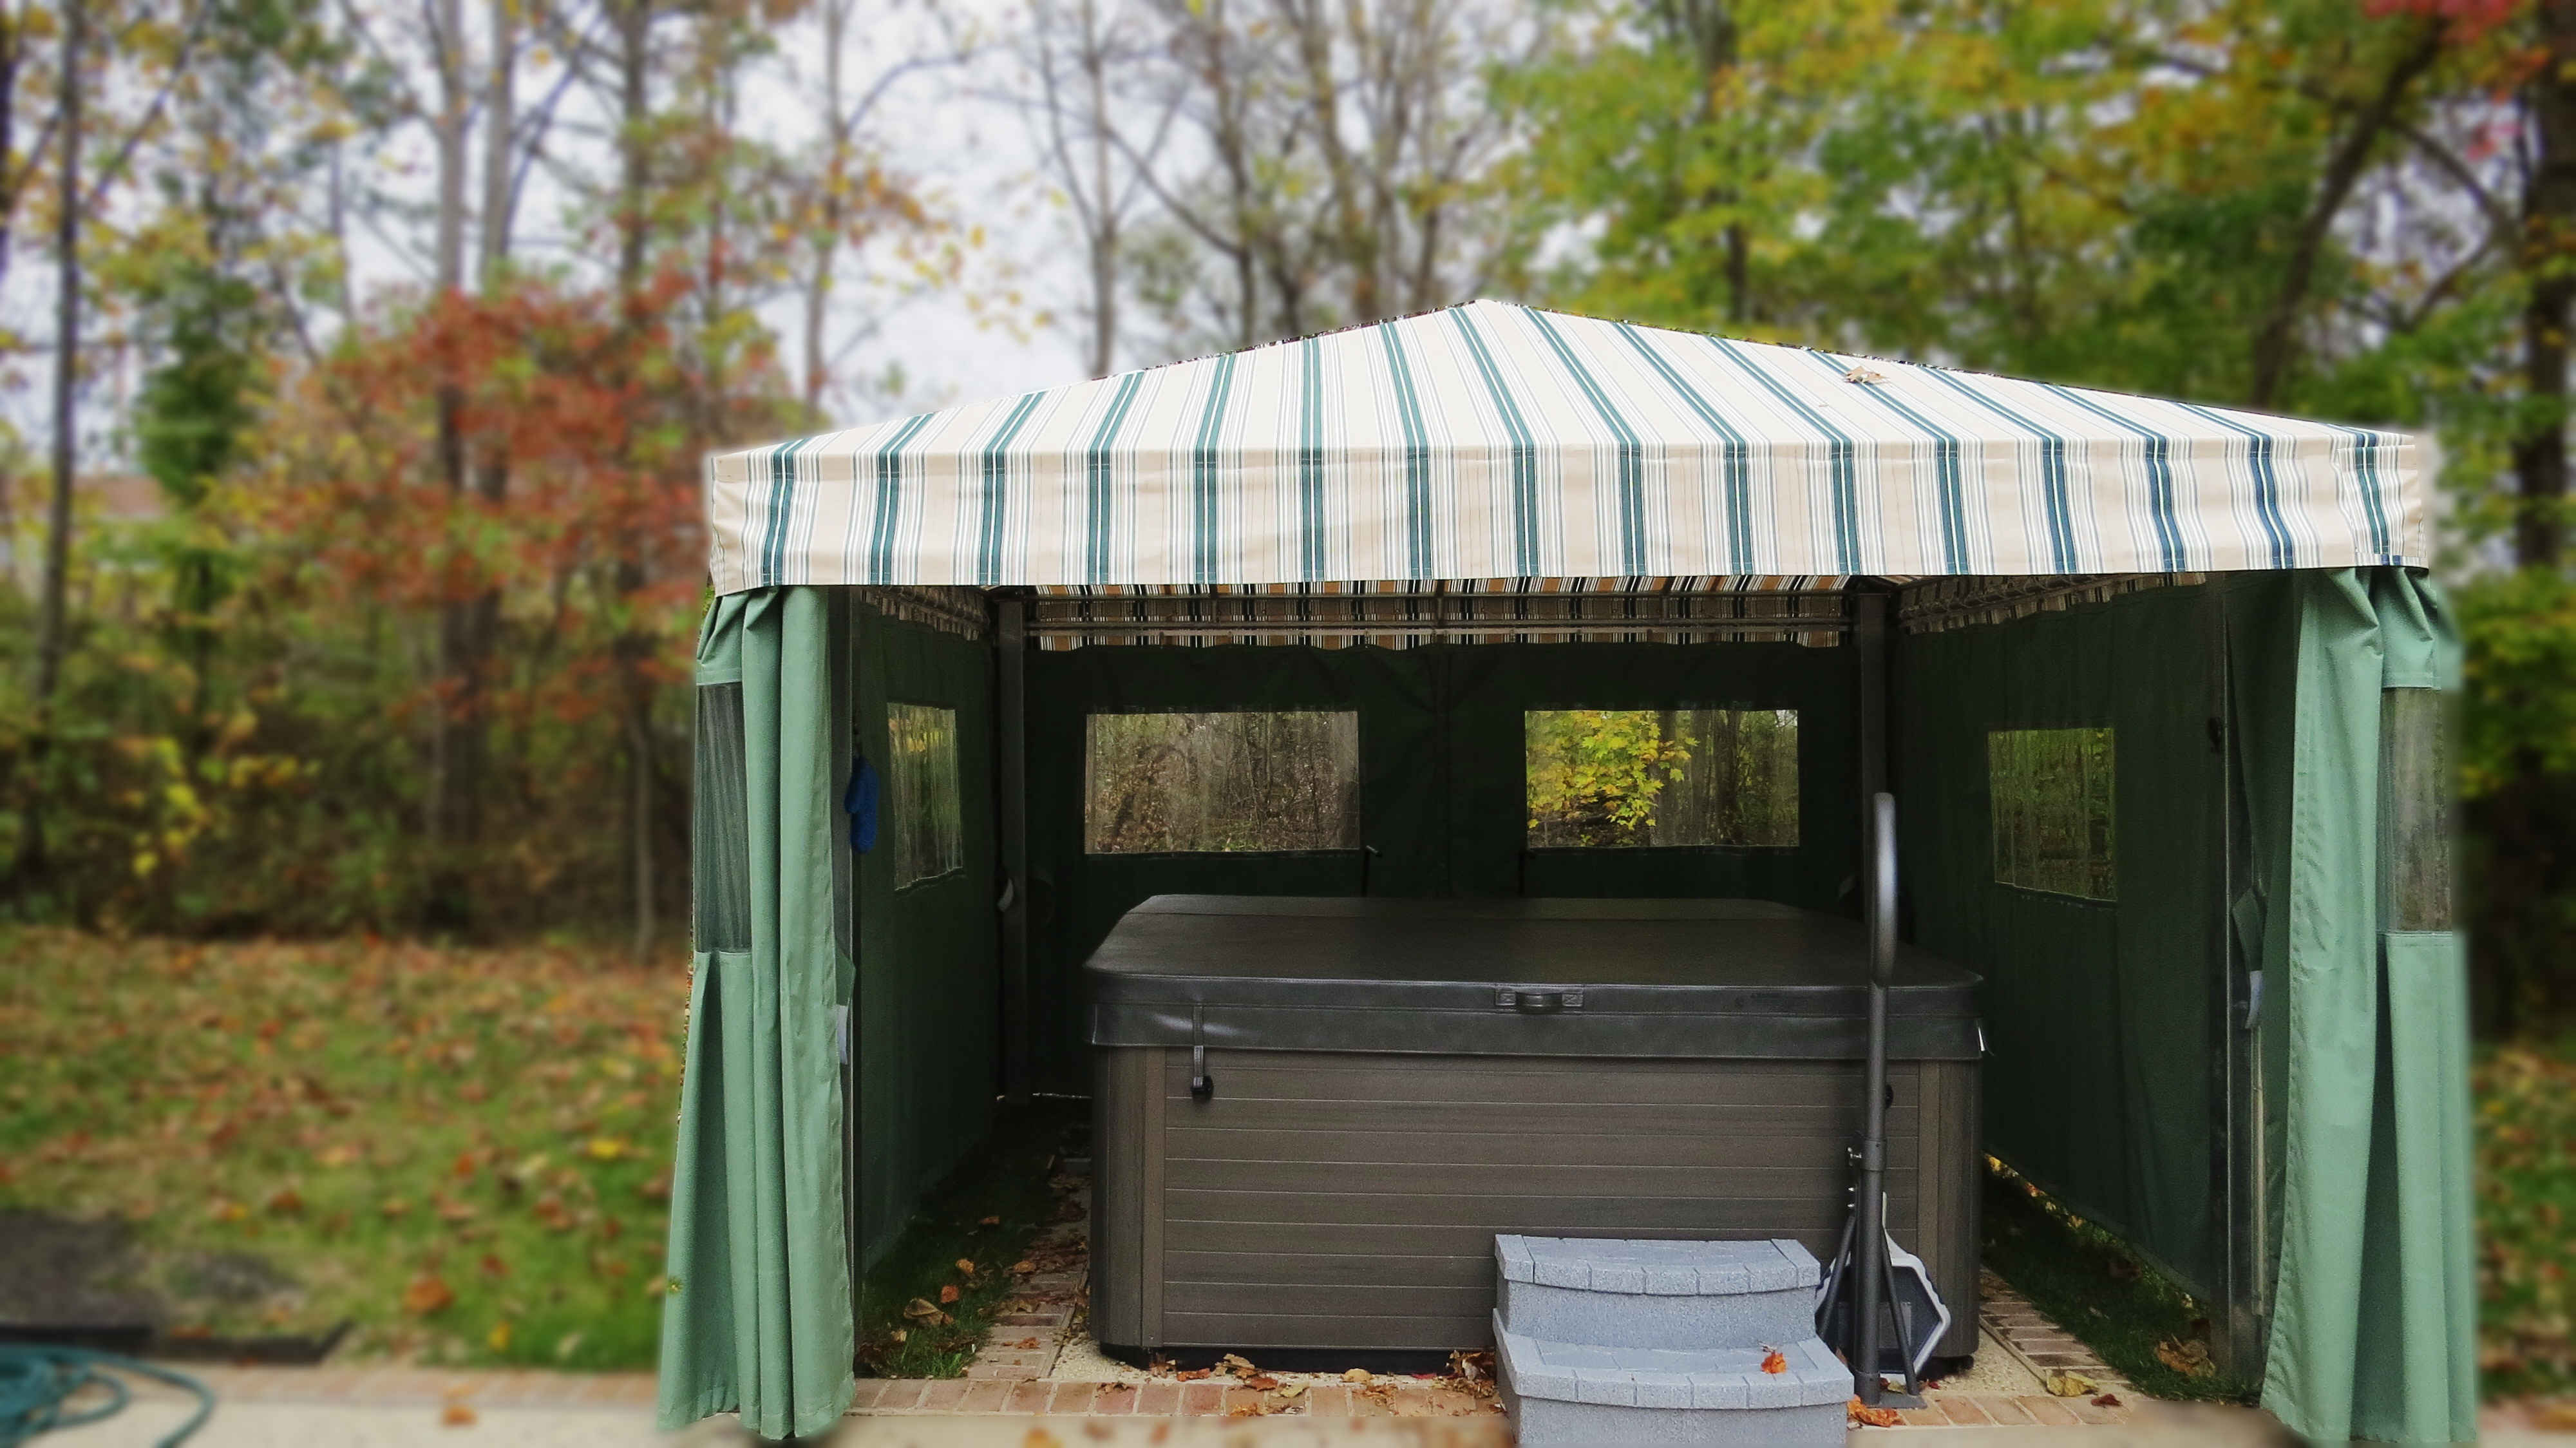 Call A Hoffman Awning in Baltimore     410-685-5687 http://ahoffmanawning.com/retractable-awnings/Graphics Hot Tub Awning with Privacy Curtains